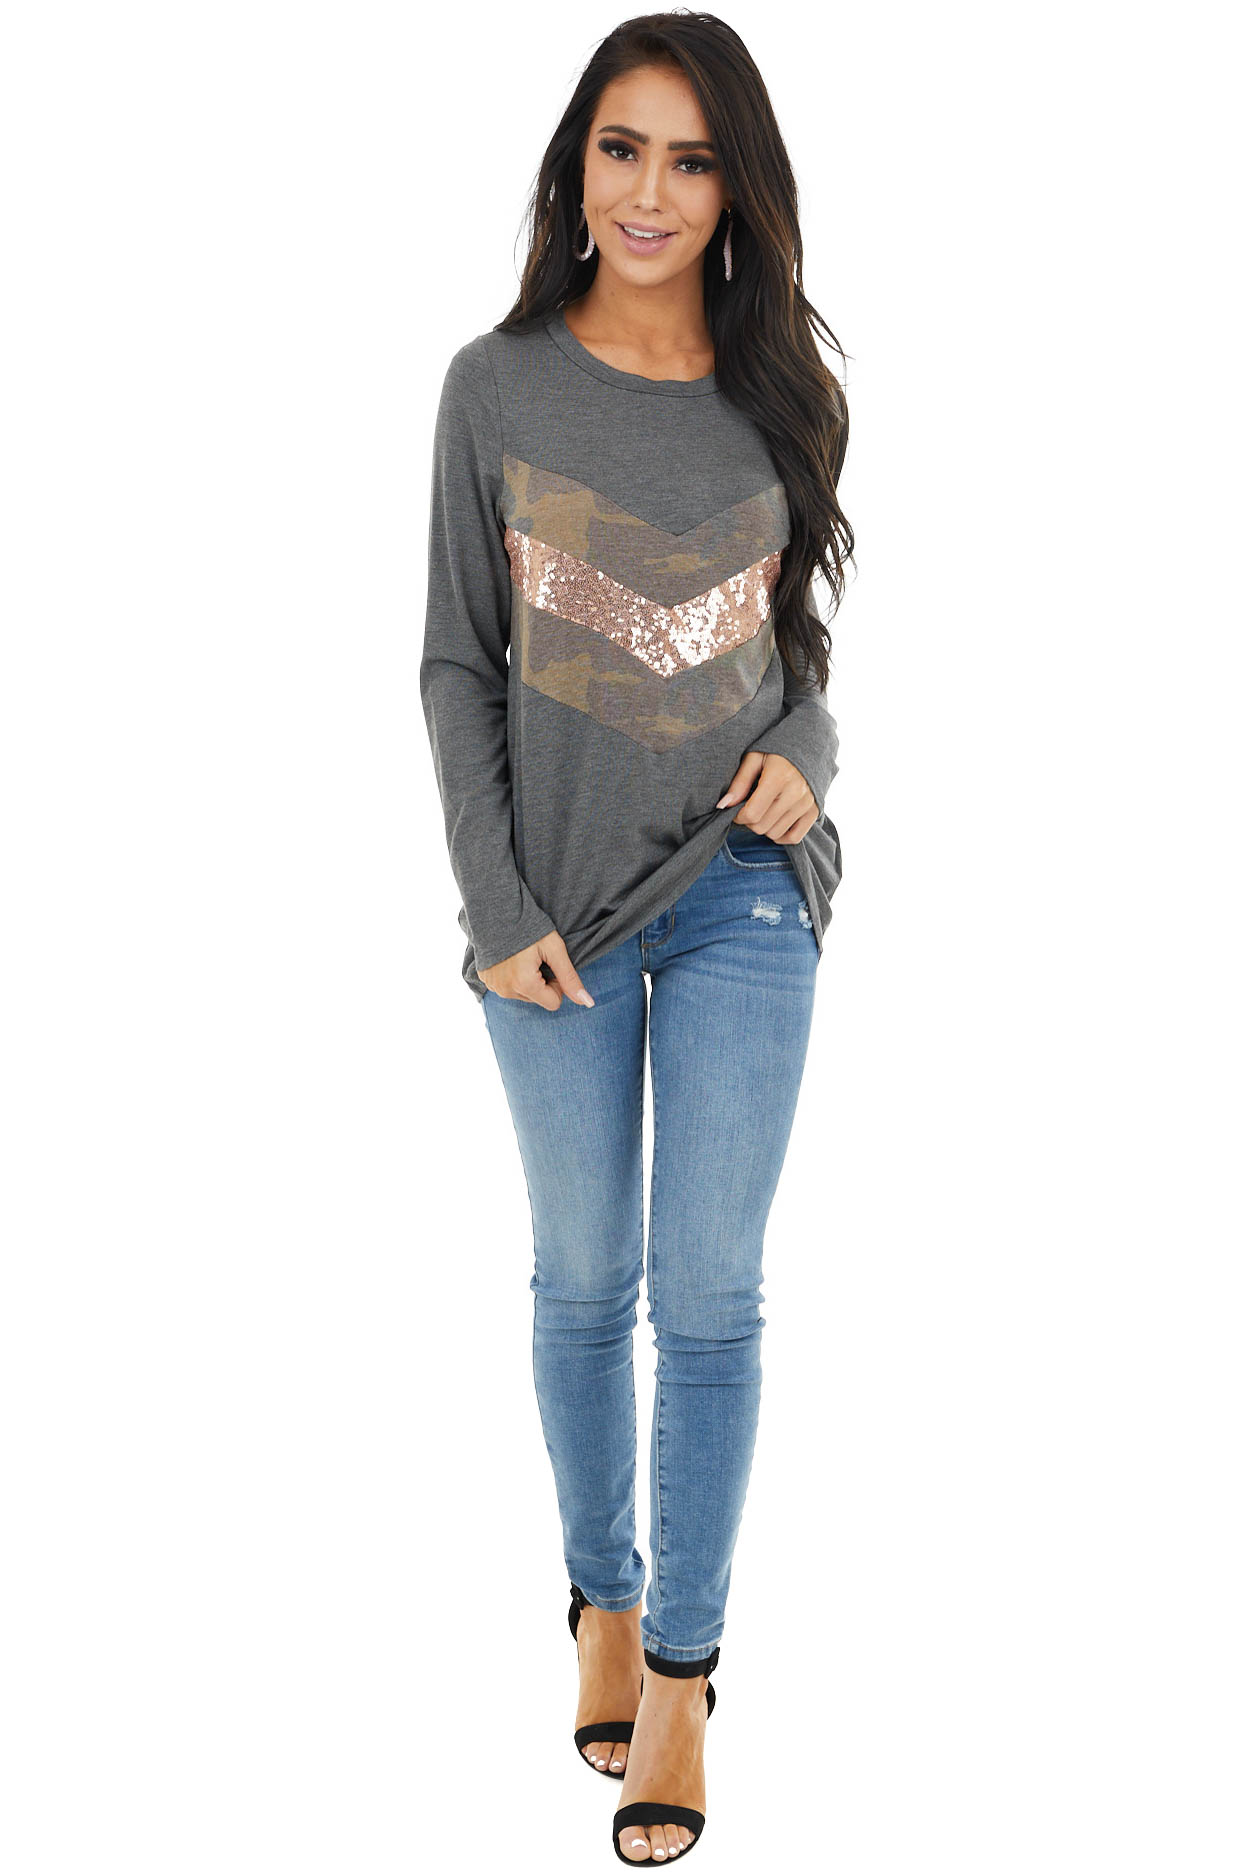 Charcoal Long Sleeve Top with Sequin and Camo Details